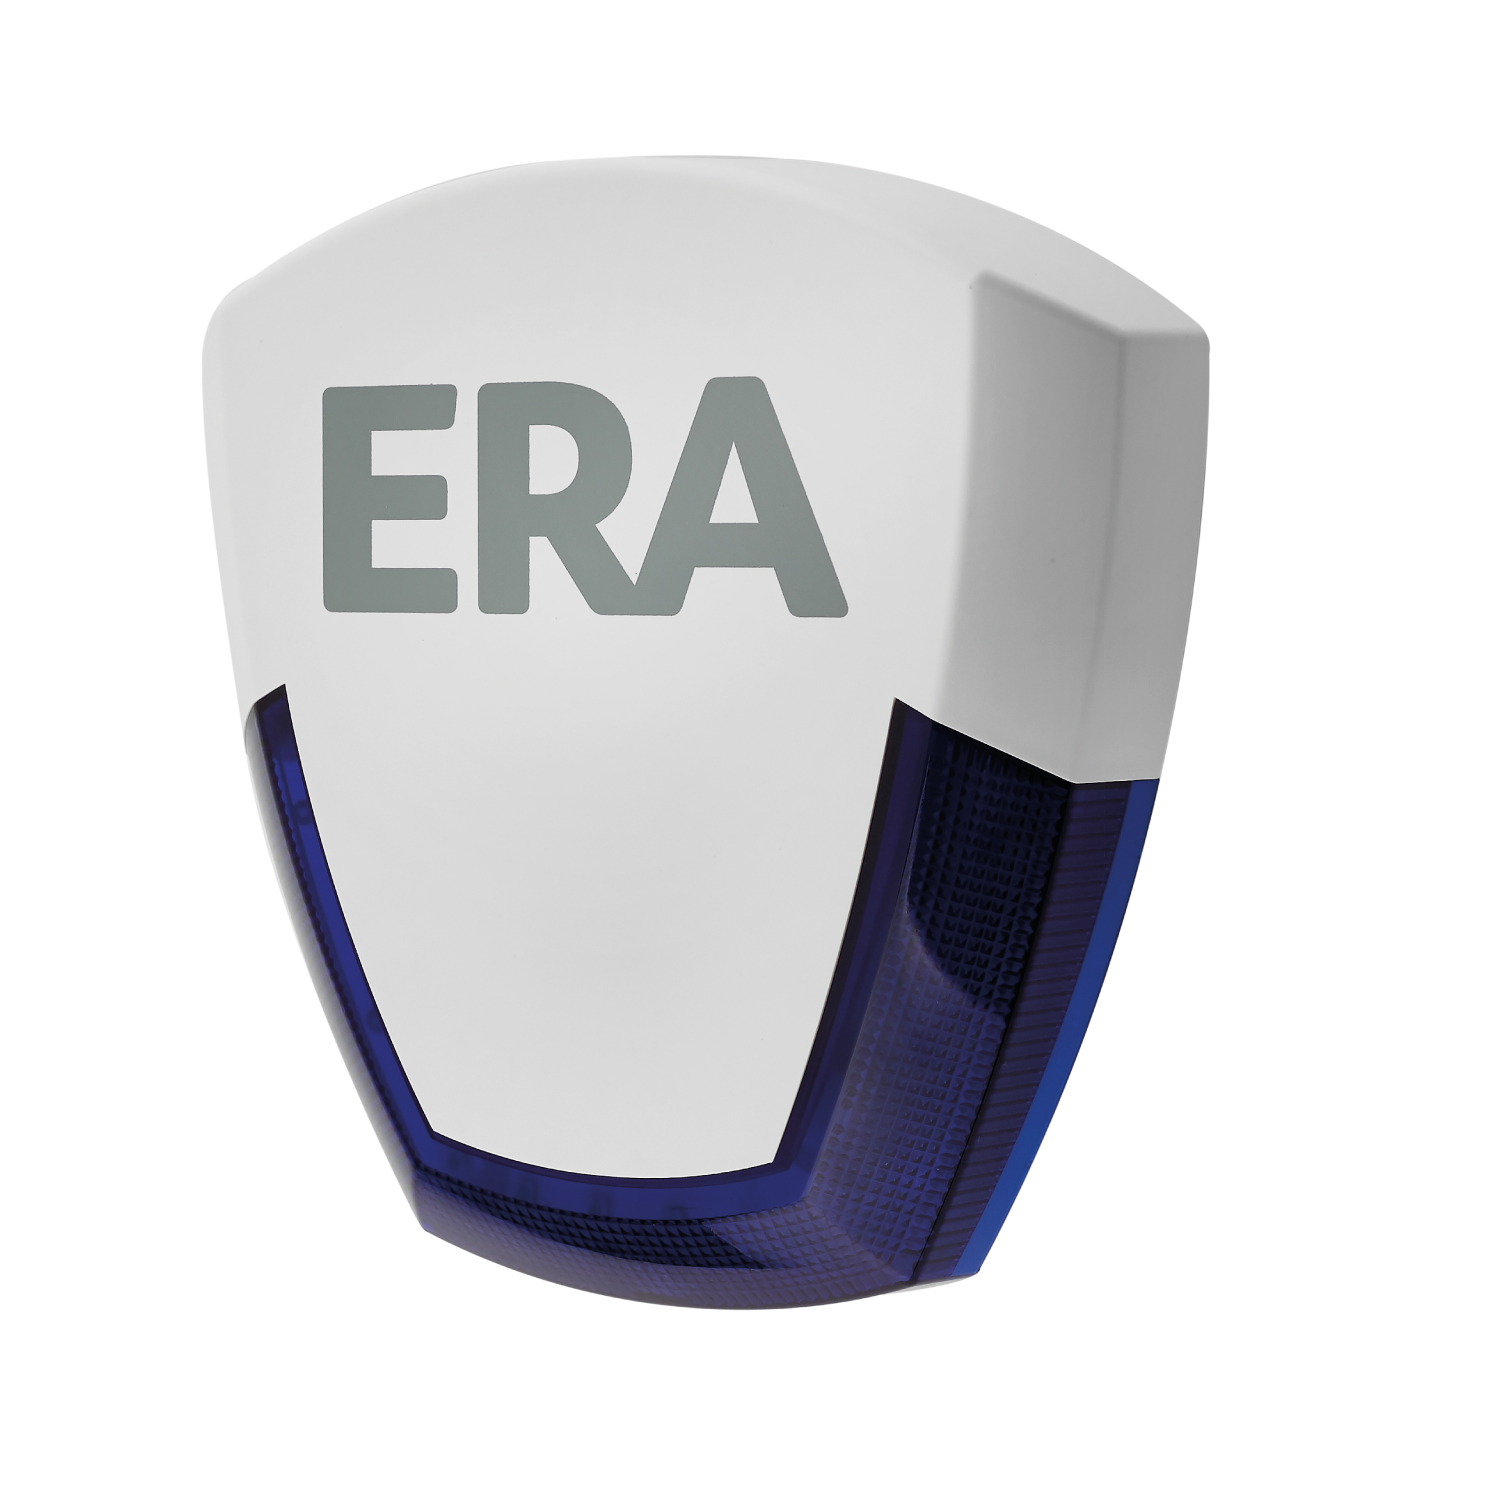 ERA Protect Battery Operated Wireless Siren